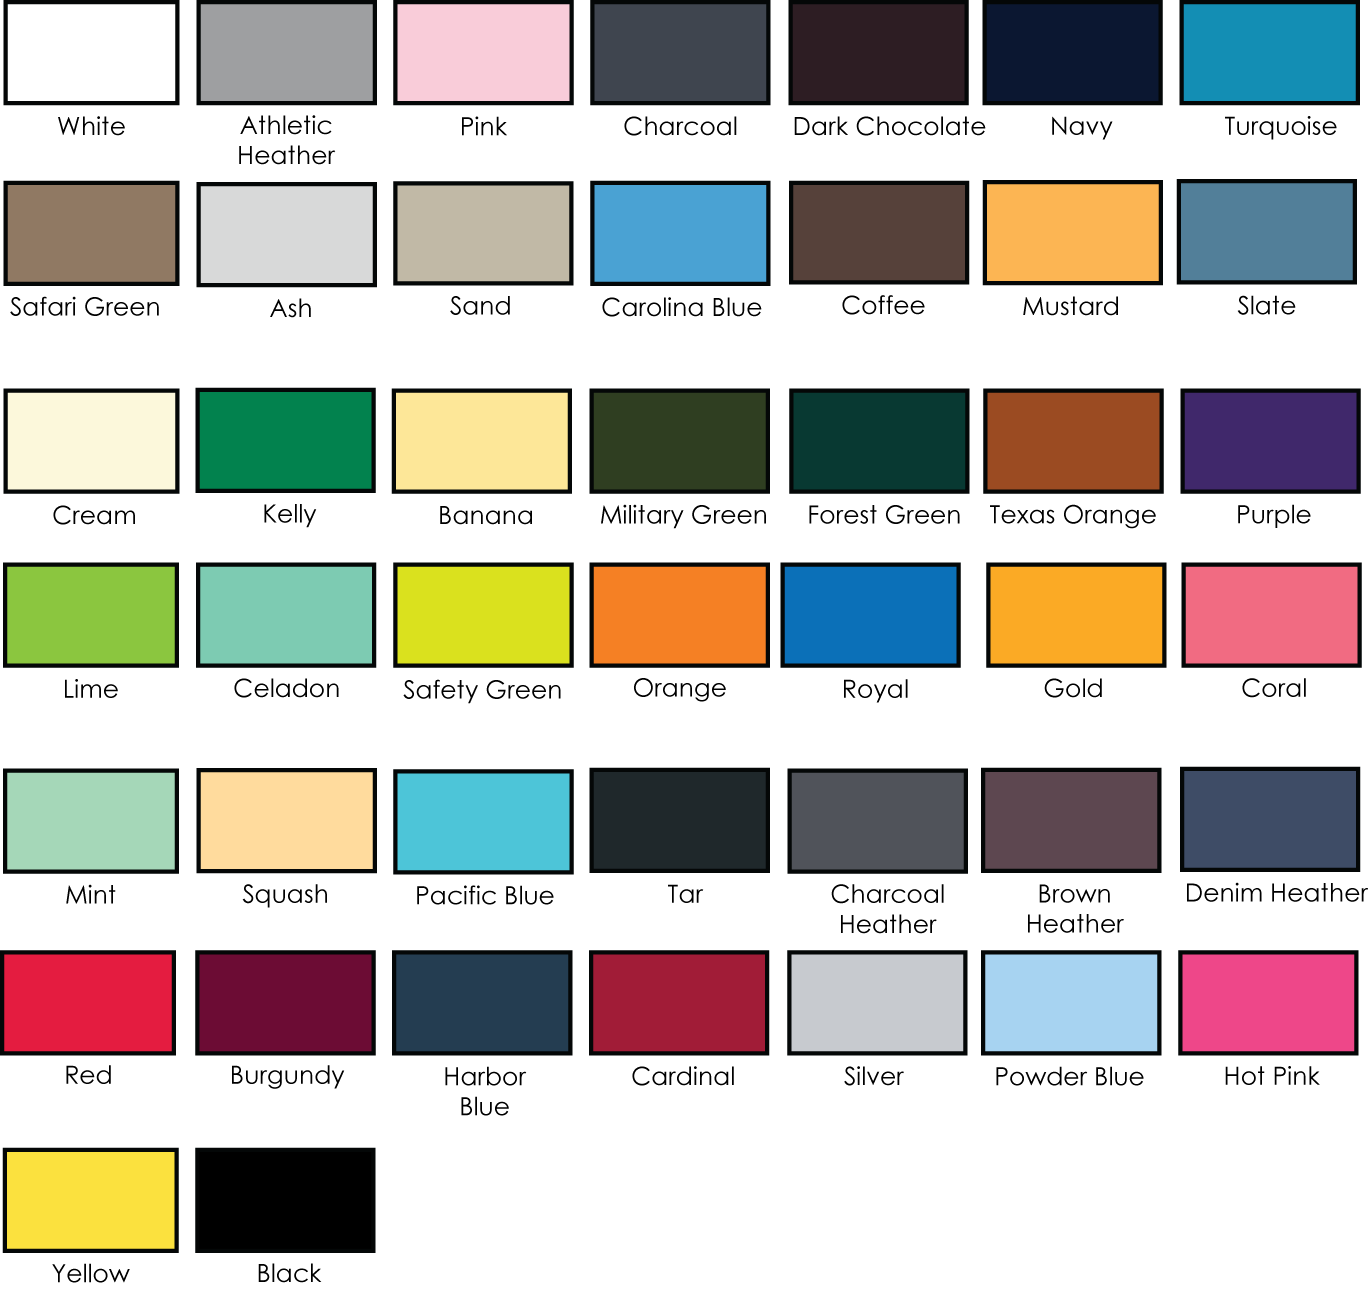 Alstyle 60oz jersey cotton tee adver t screen printing color chart 1301imagecolors nvjuhfo Image collections